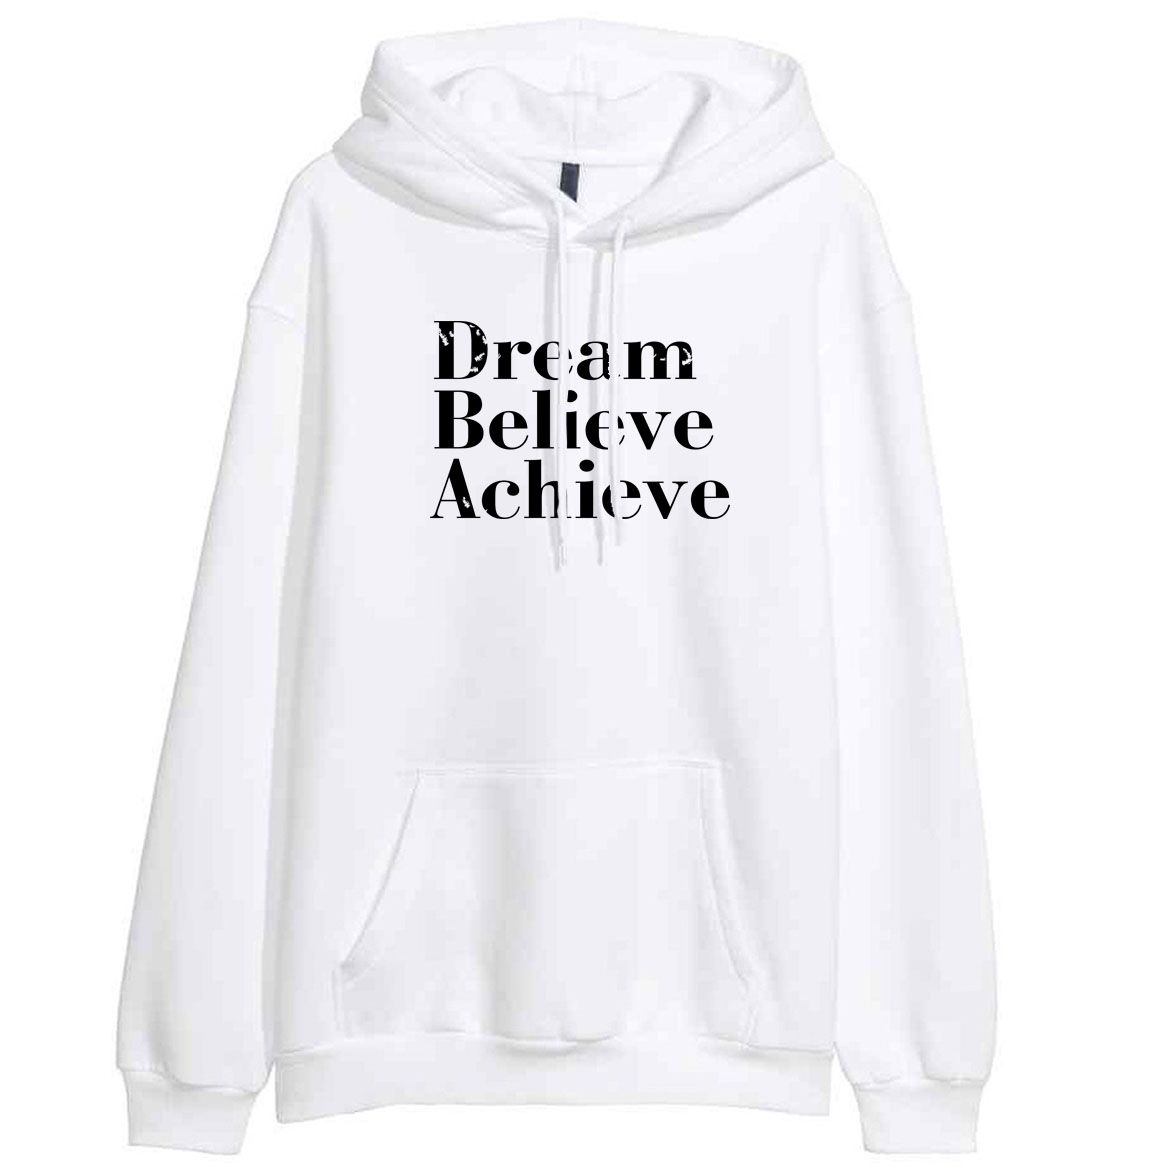 DREAM BELIEVE ACHIEVE Print Letter Female Sweatshirt 2019 New Hot Sale Hoodies For Women Spring Winter Pullover Hoody Kawaii